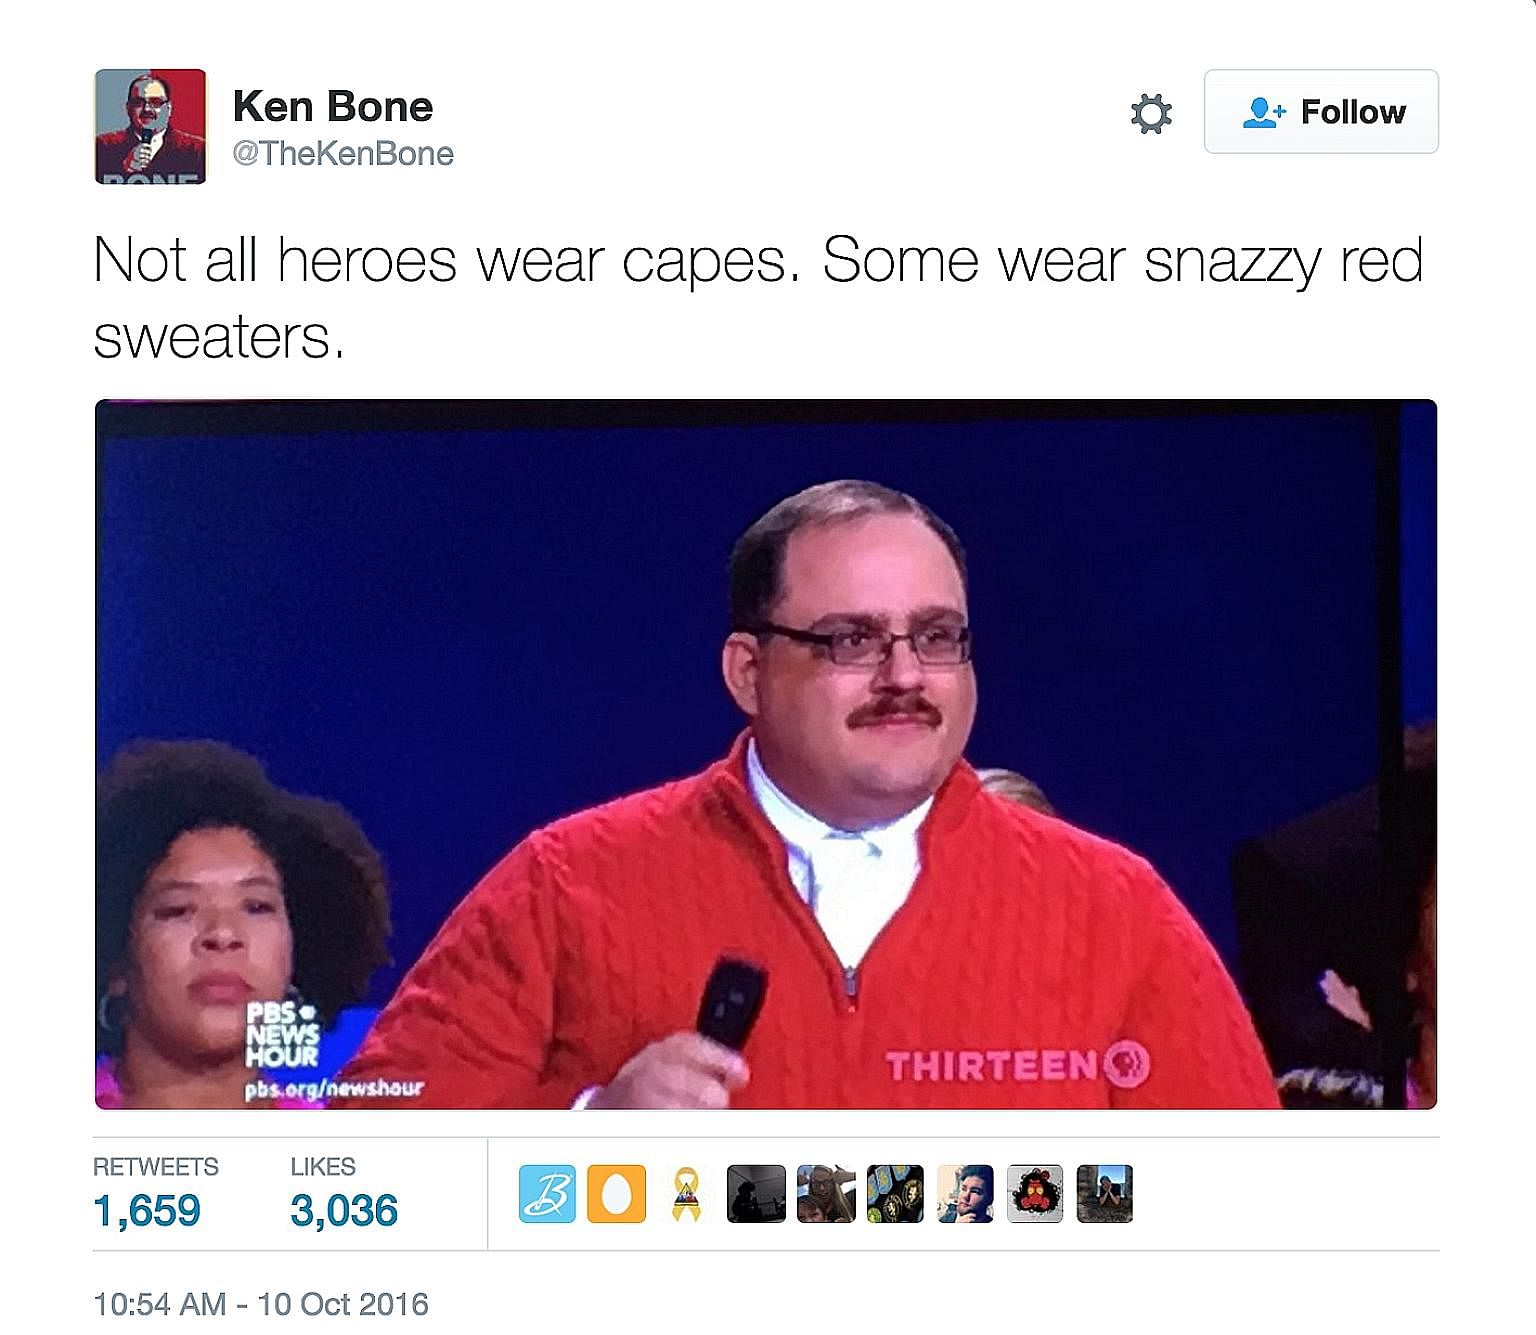 Mr Kenneth Bone had initially intended to wear an olive-coloured suit, but donned a red fleece sweater when he split his trousers while getting into his car. His earnest demeanour at a United States presidential debate has made him an Internet hit.